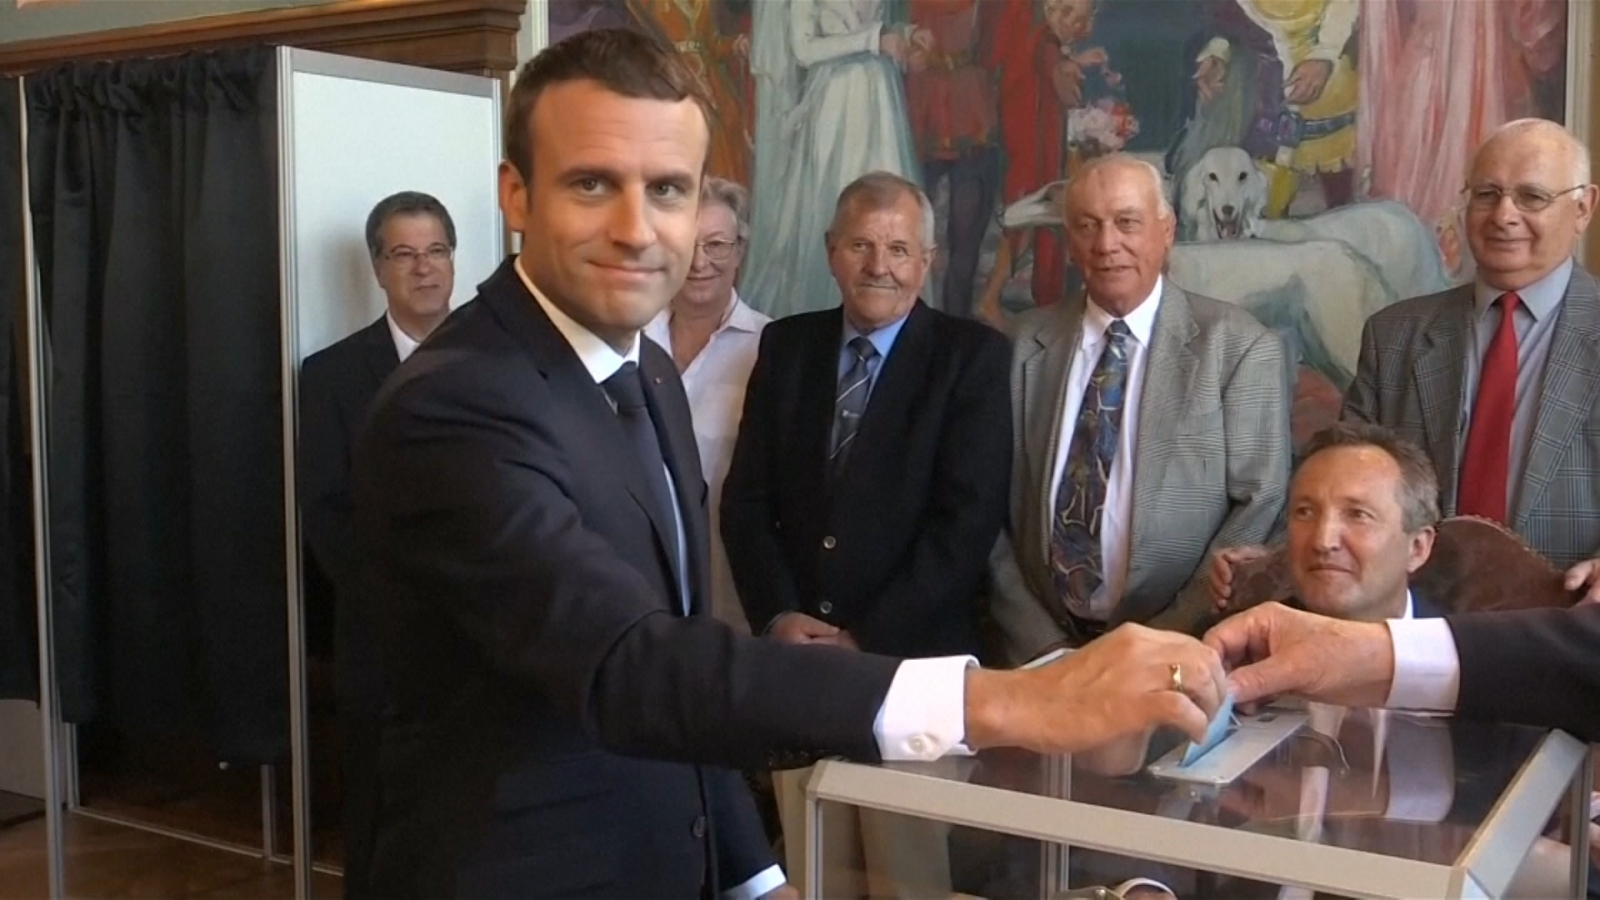 Emmanuel Macron's Party Wins Large Majority In French Parliament